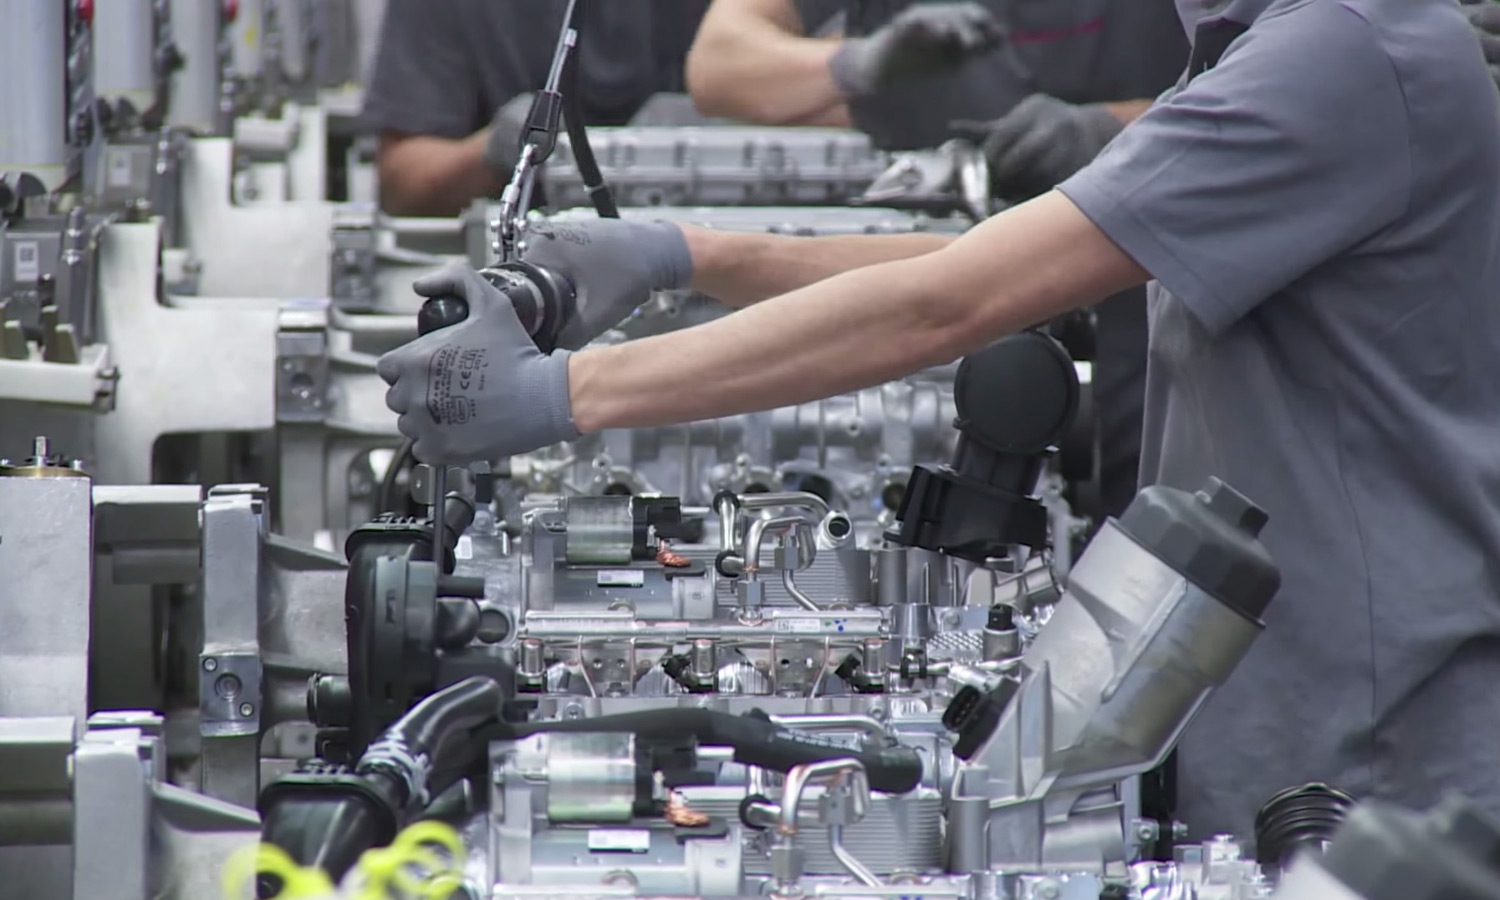 Porsche 911 Engine Assembly Line in Germany